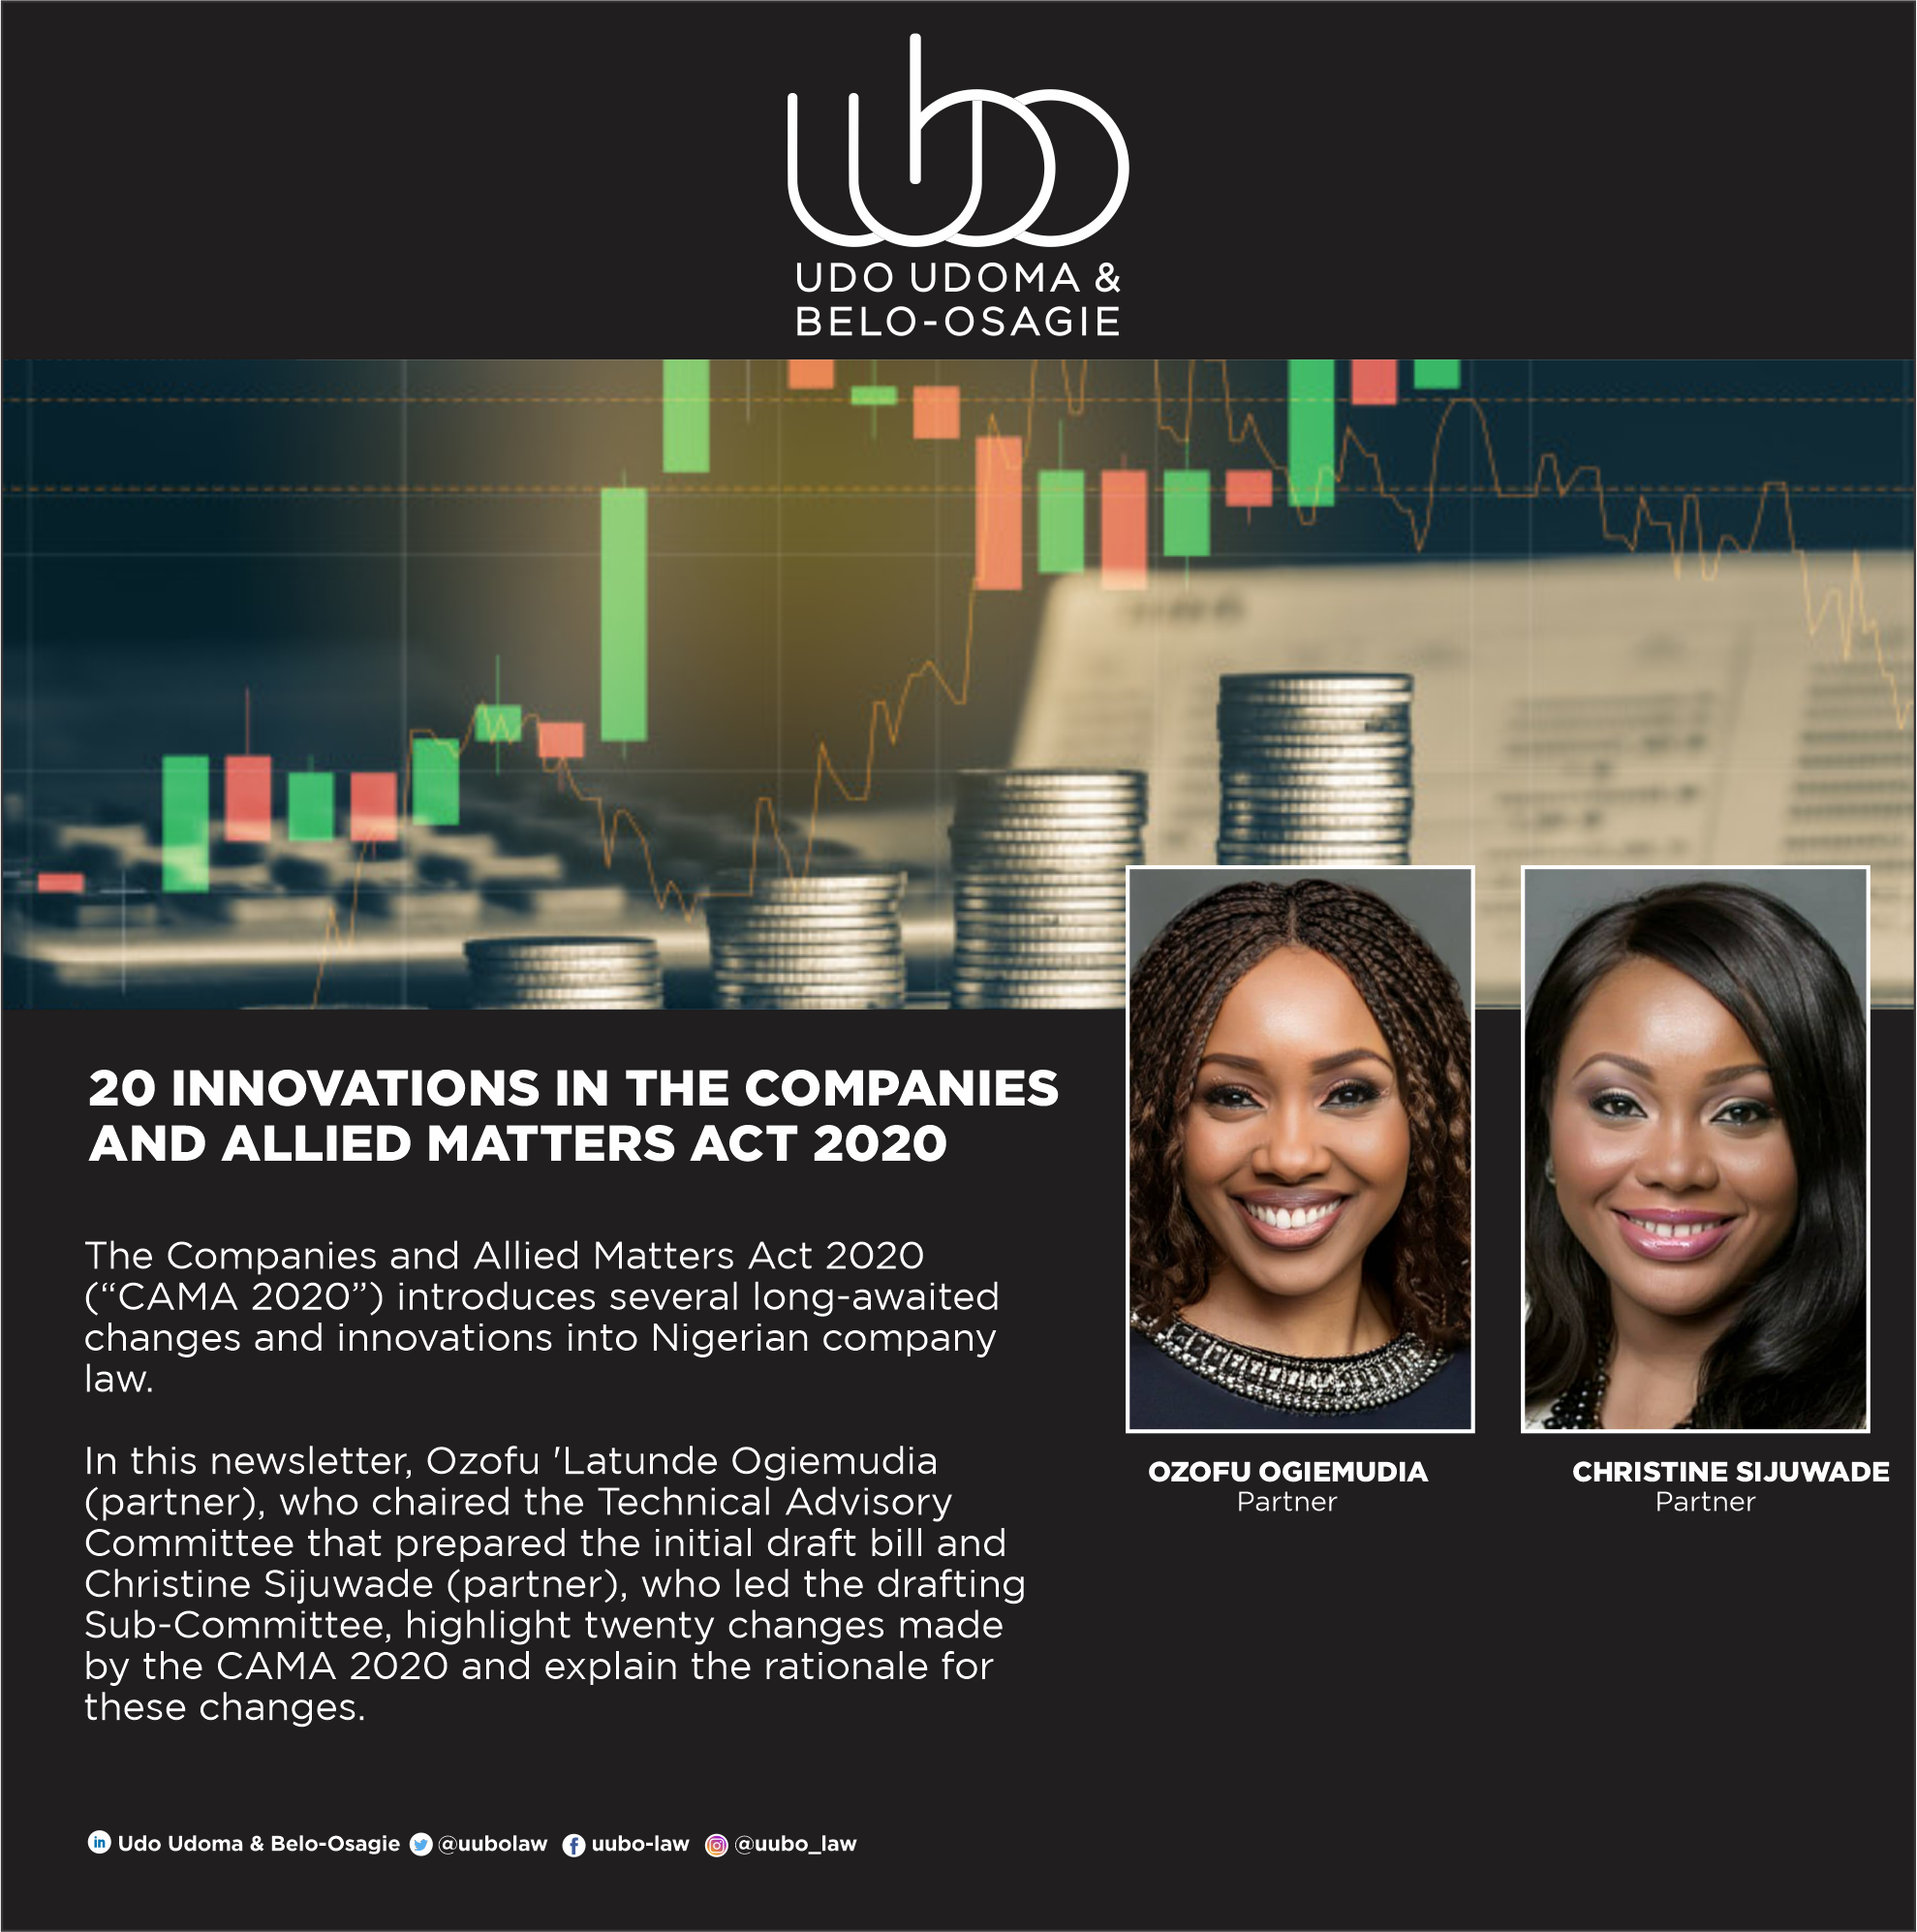 20 INNOVATIONS IN THE COMPANIES AND ALLIED MATTERS ACT 2020